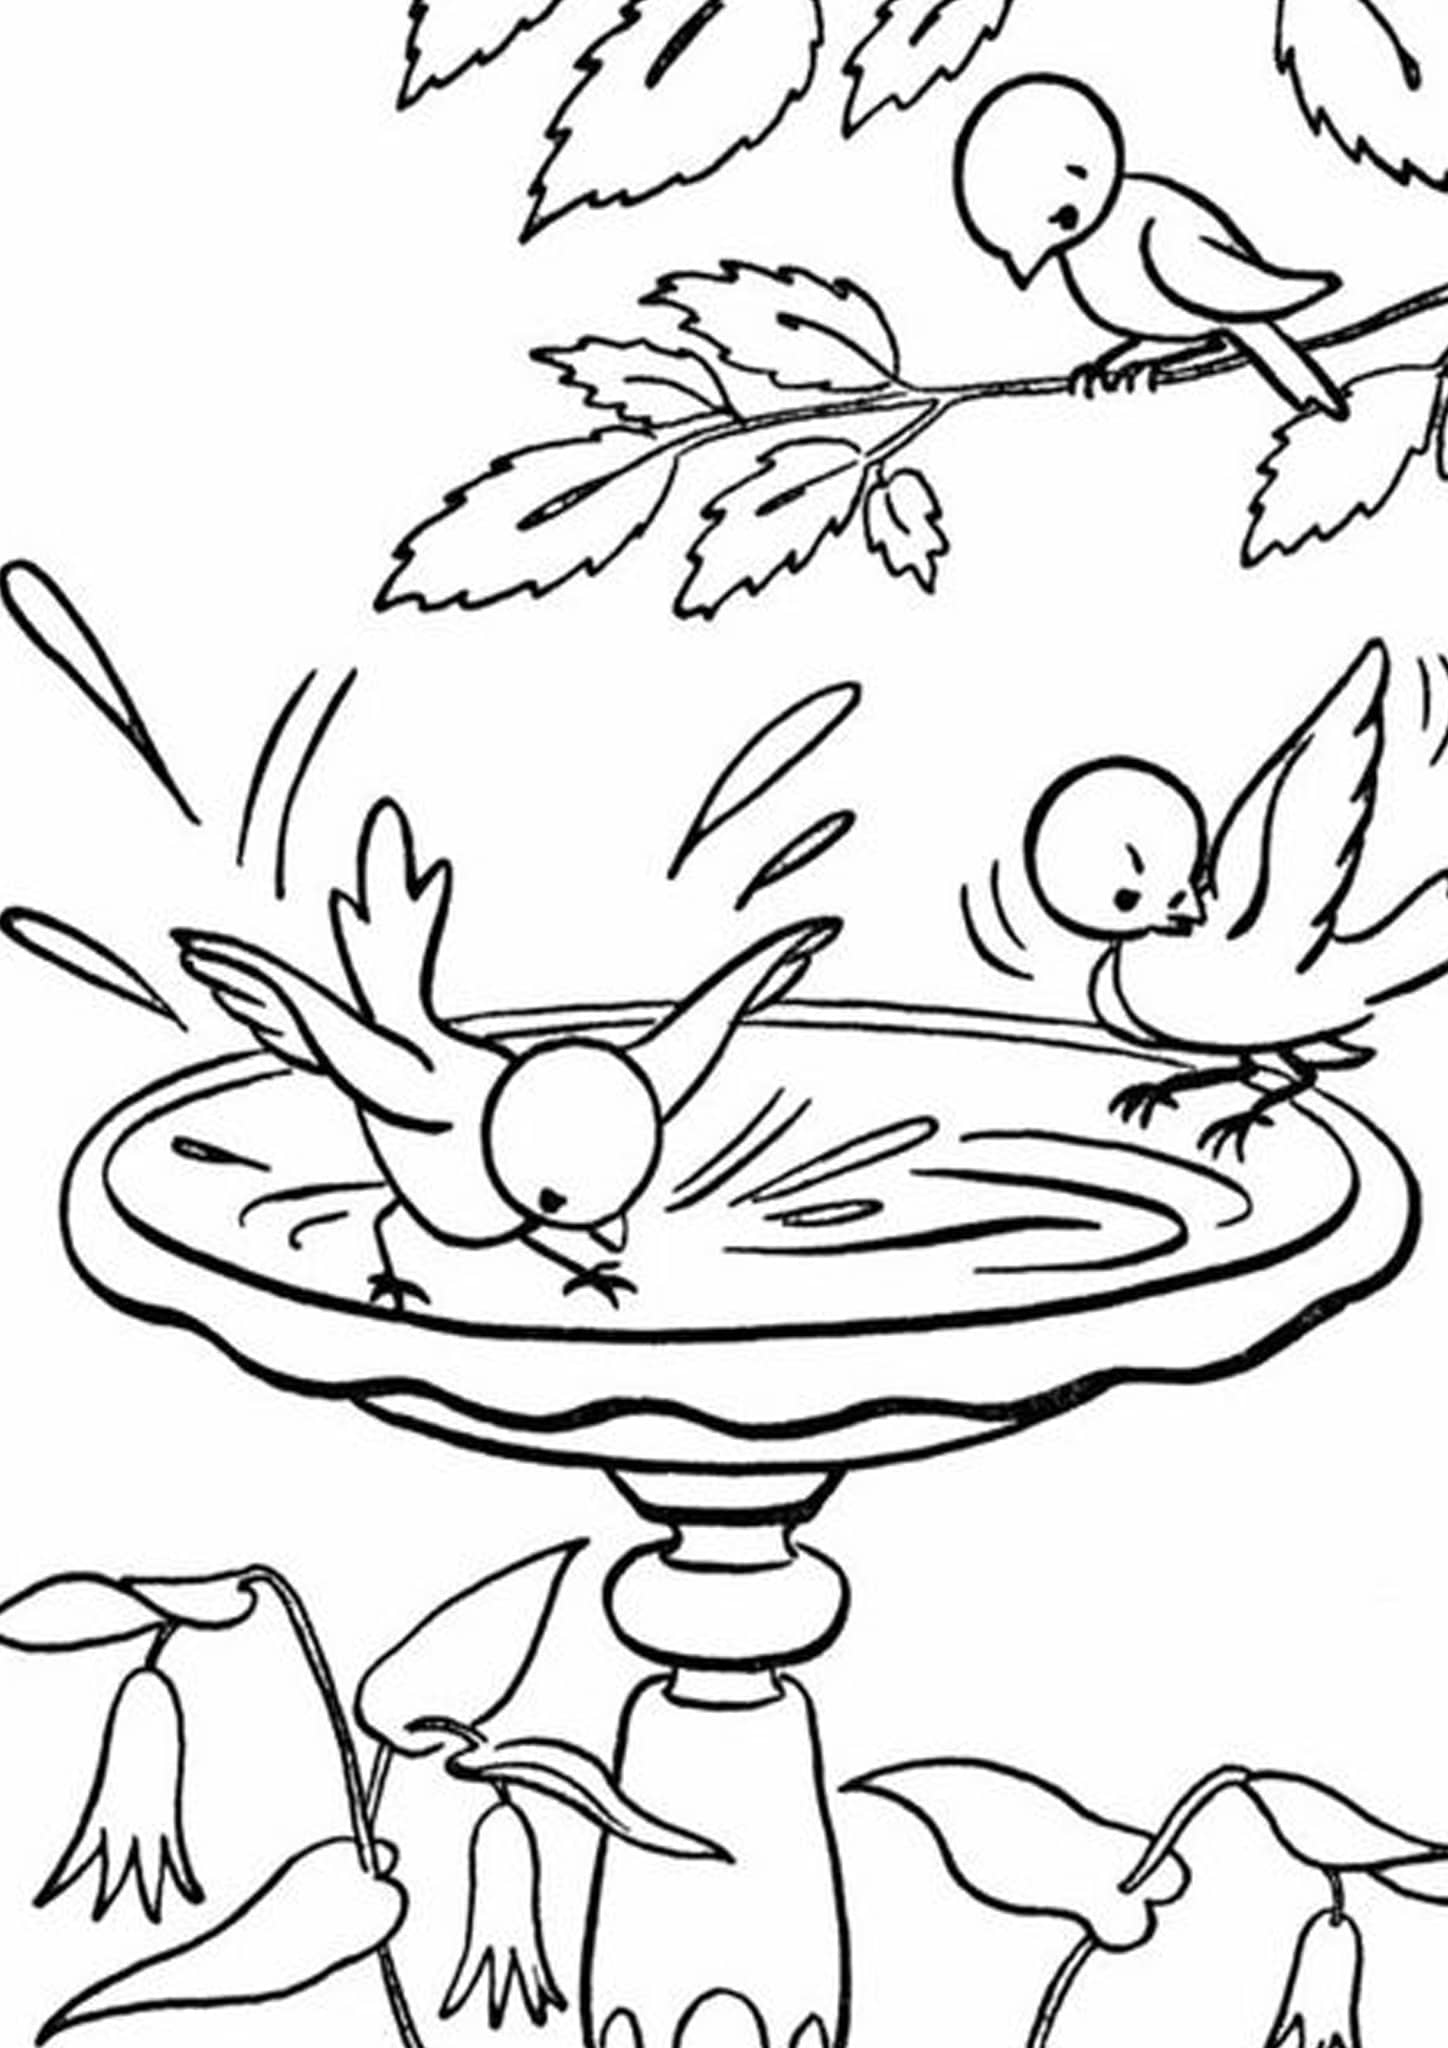 Free & Easy To Print Bird Coloring Pages - Tulamama